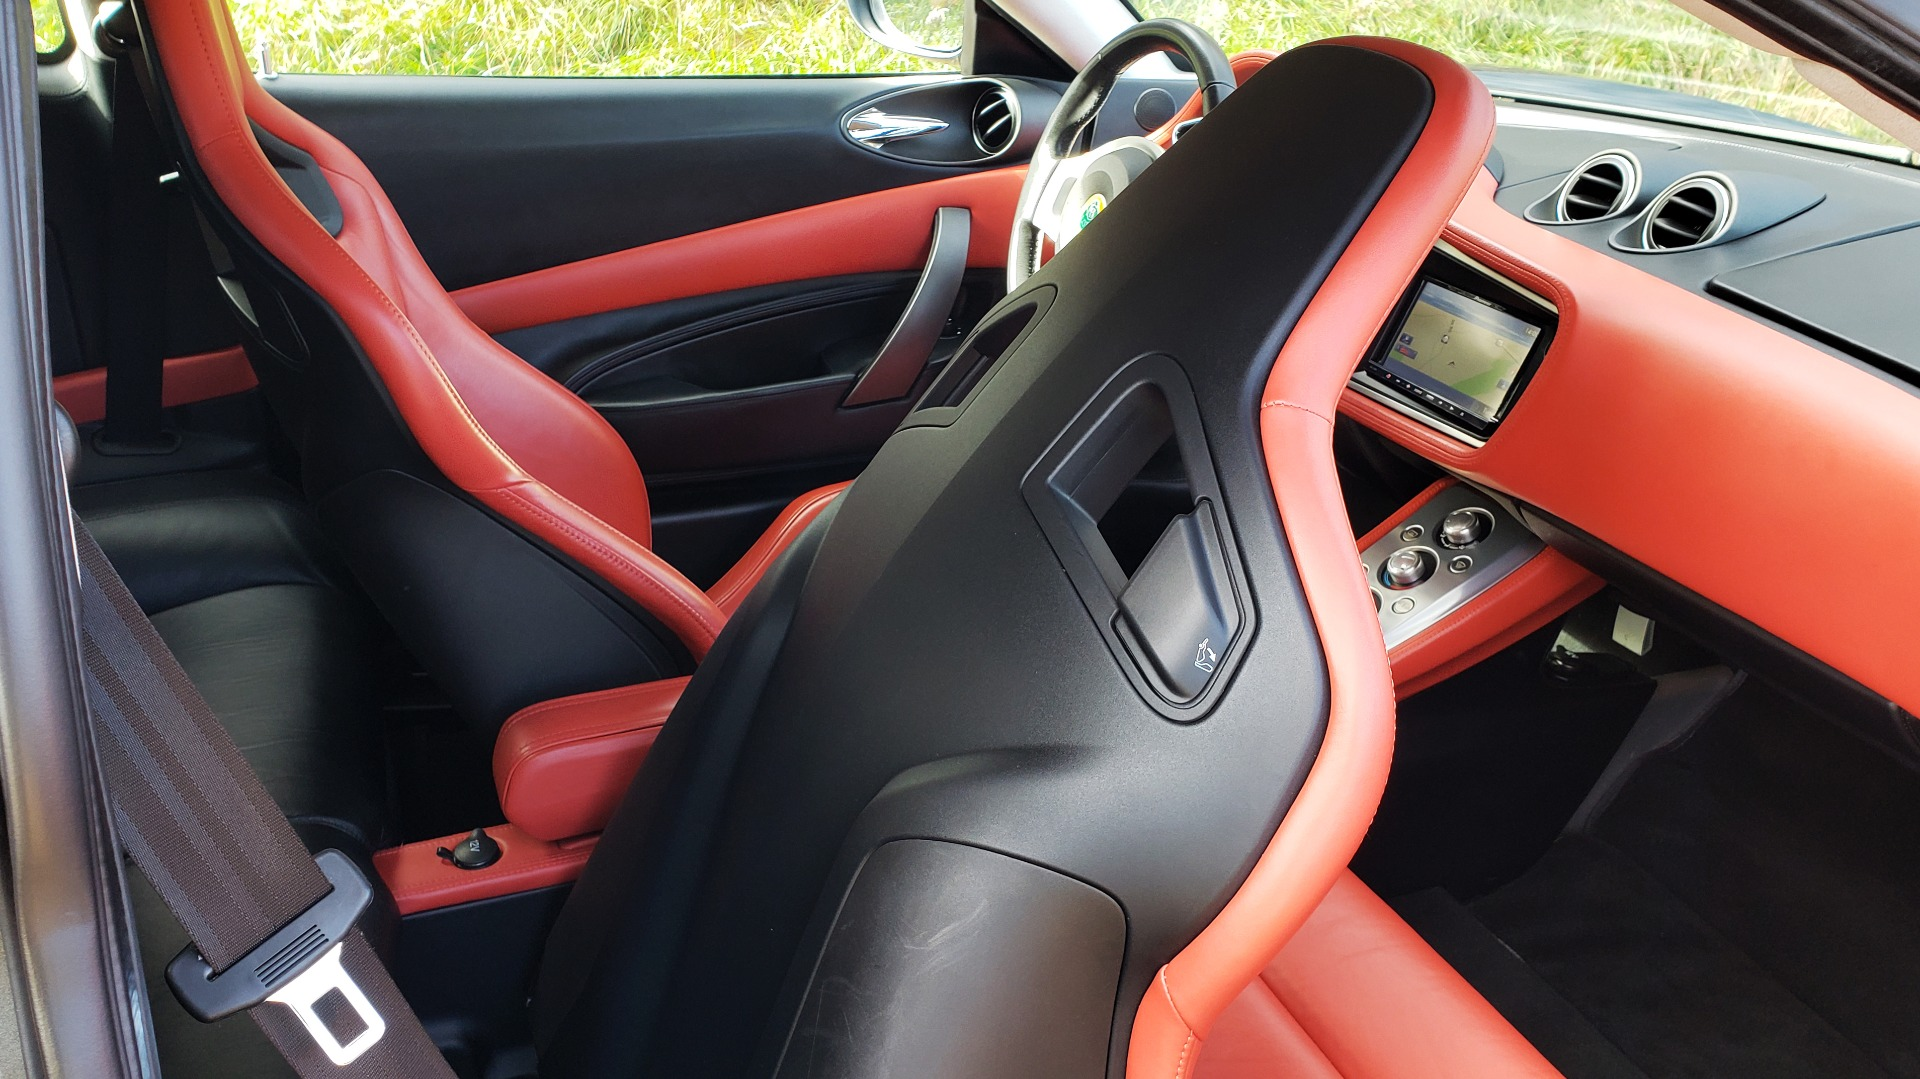 Used 2011 Lotus EVORA S 2+2 / 3.5L V6 / 6-SPD MANUAL / PIONEER / REARVIEW / LOW MILES for sale Sold at Formula Imports in Charlotte NC 28227 51